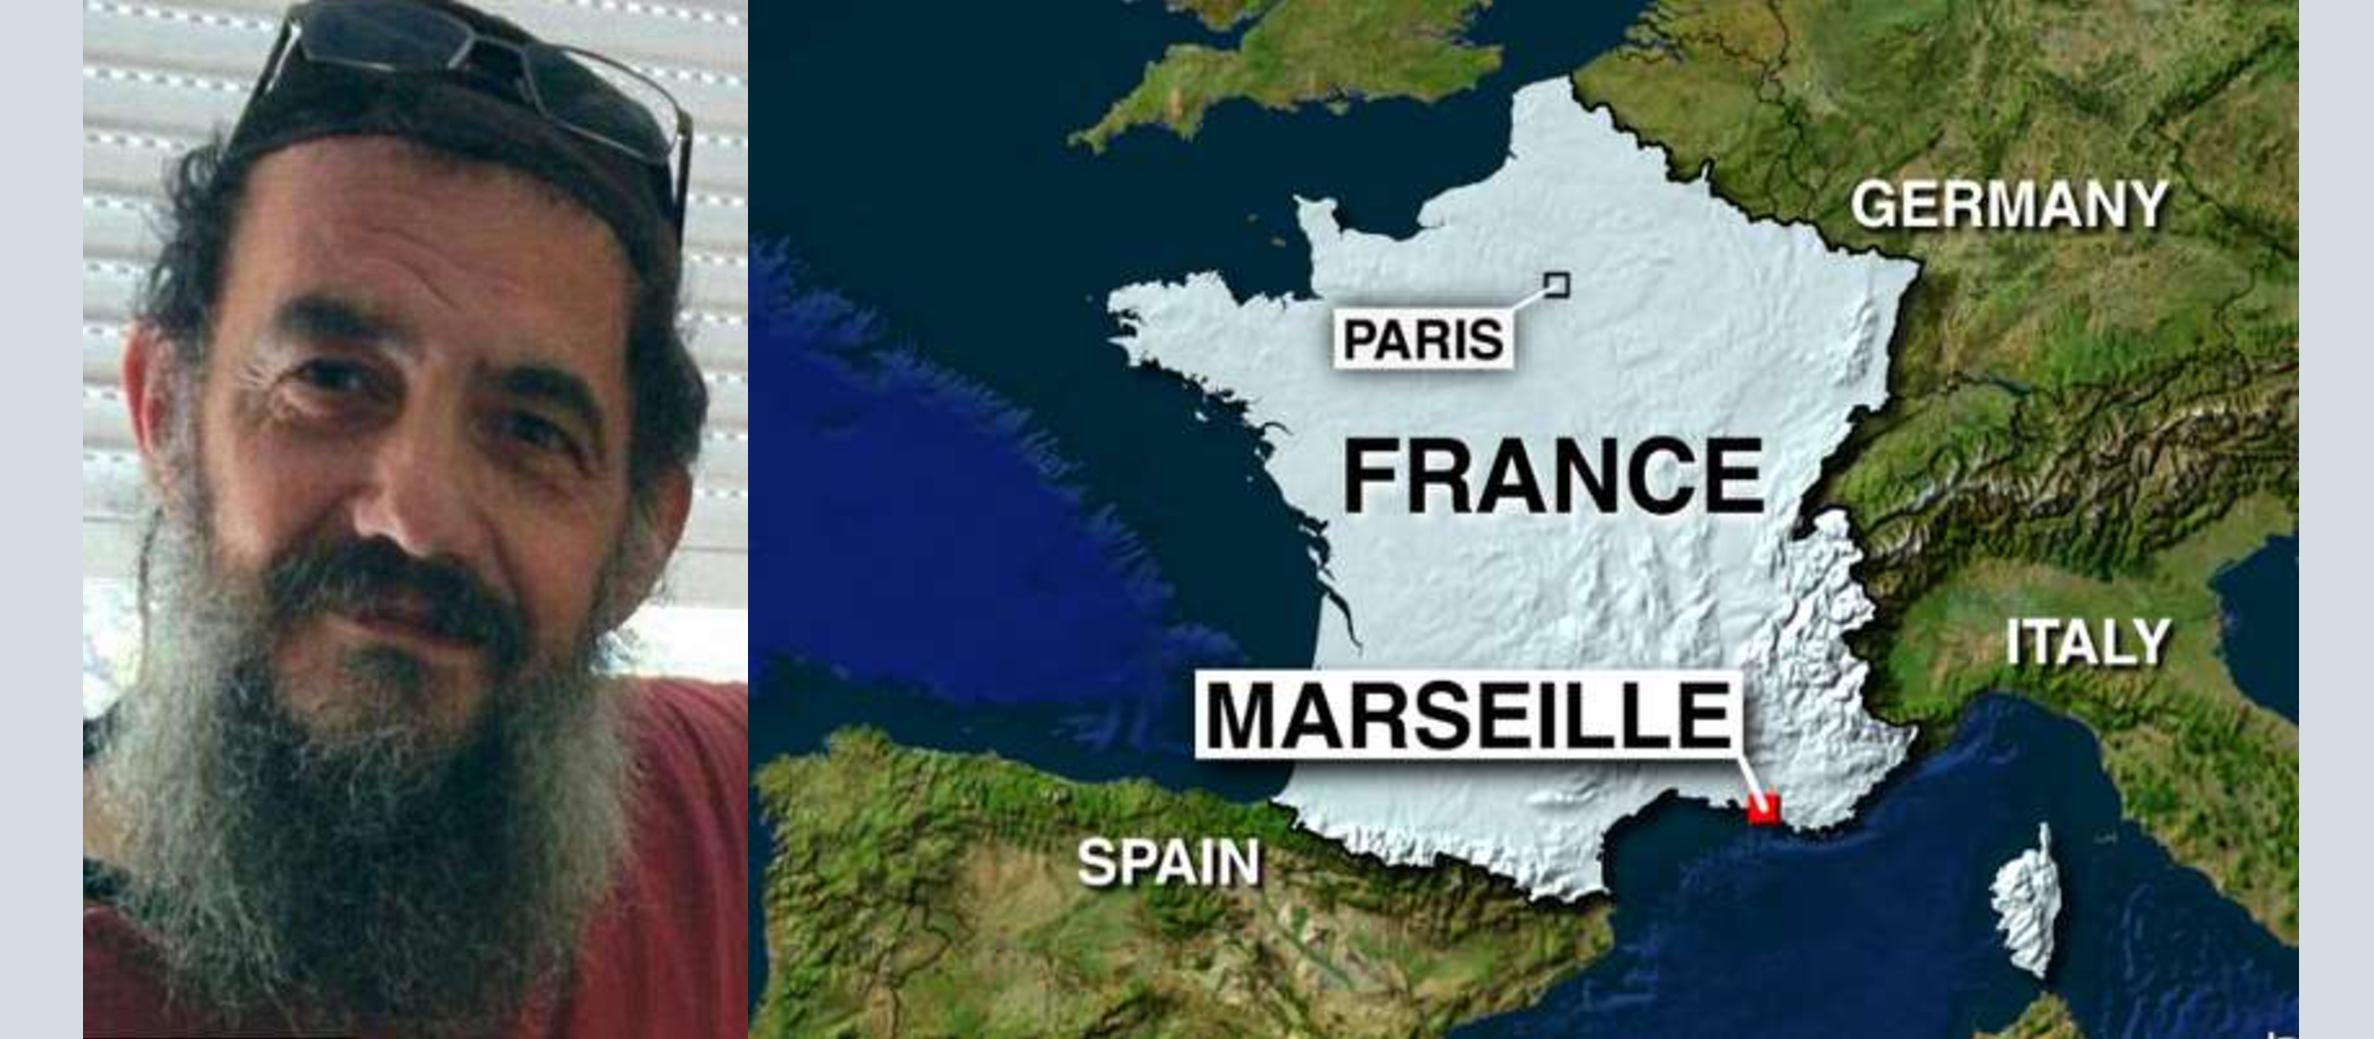 Jewish man, stabbed by 'ISIS supporters' in Marseille, named